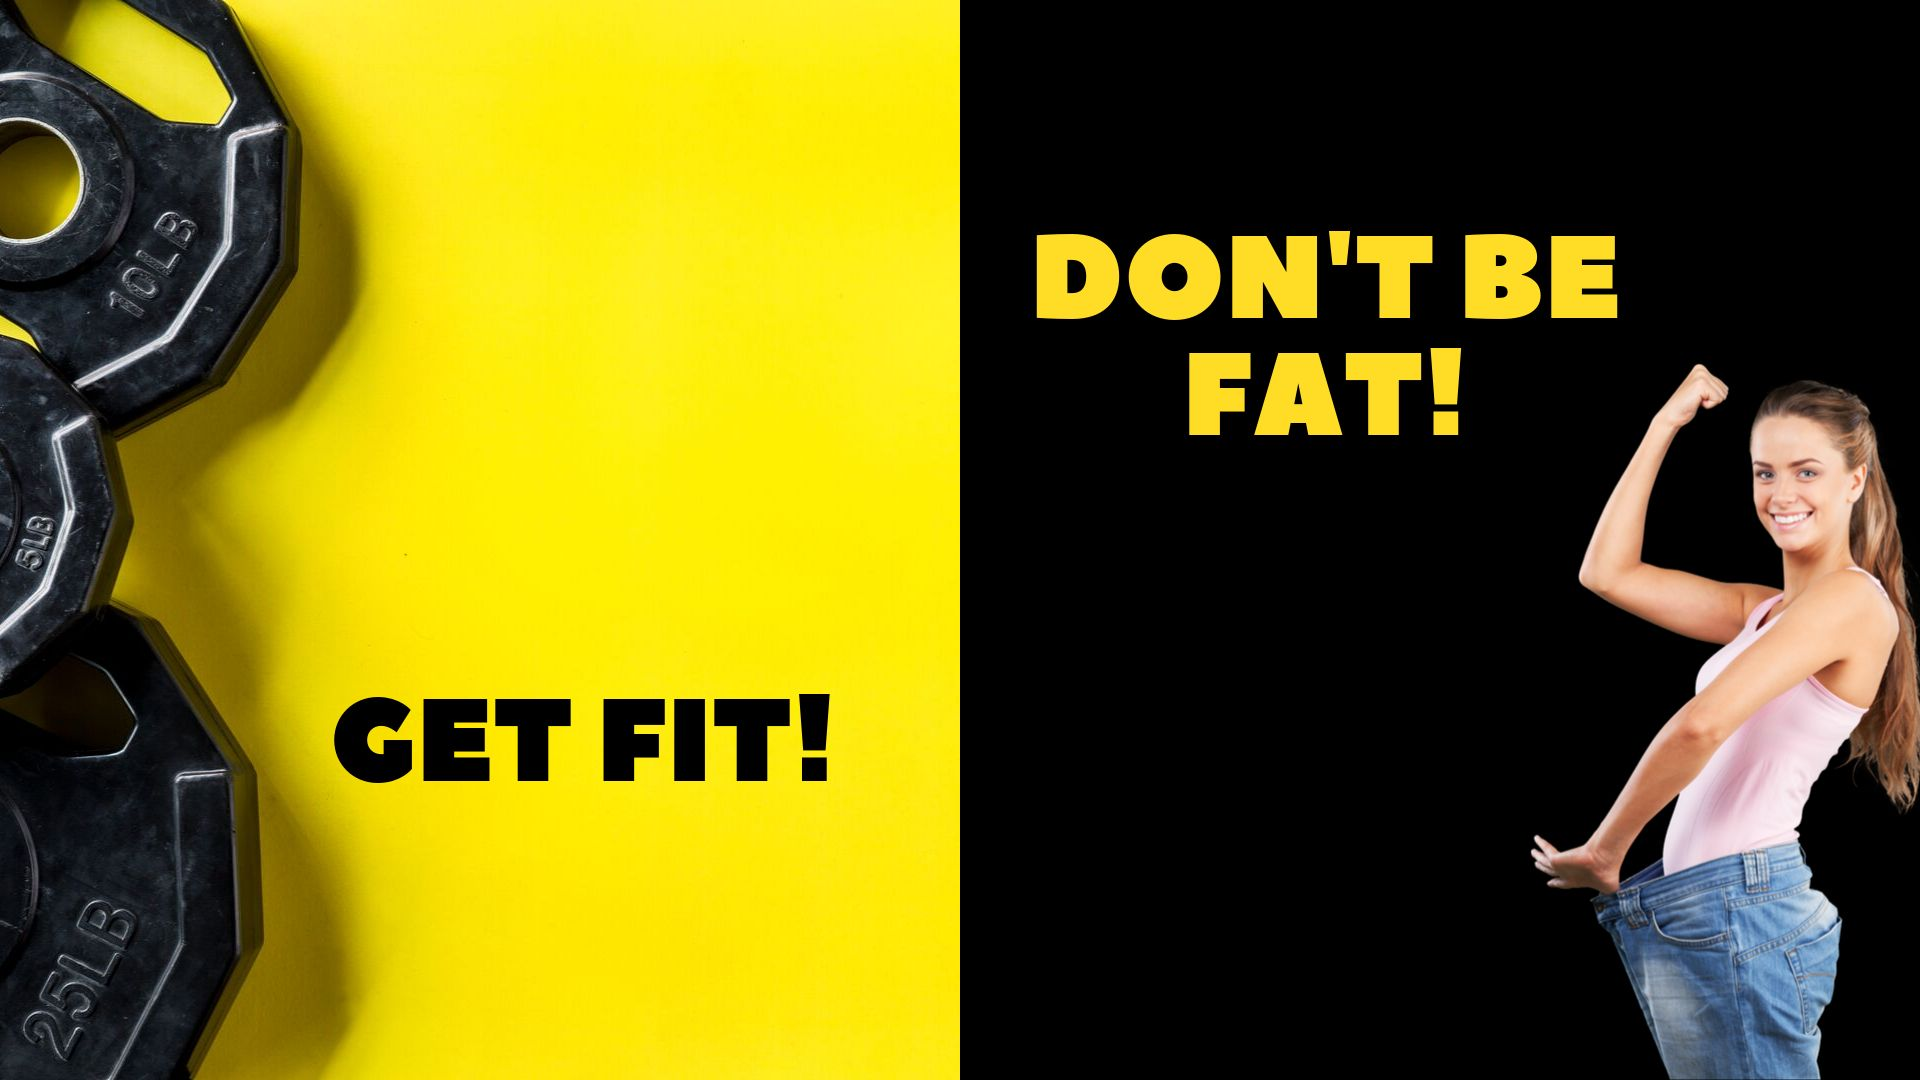 """Get Fit"" vs. ""Don't be Fat"" – How relevant contextual messaging can increase motivation."